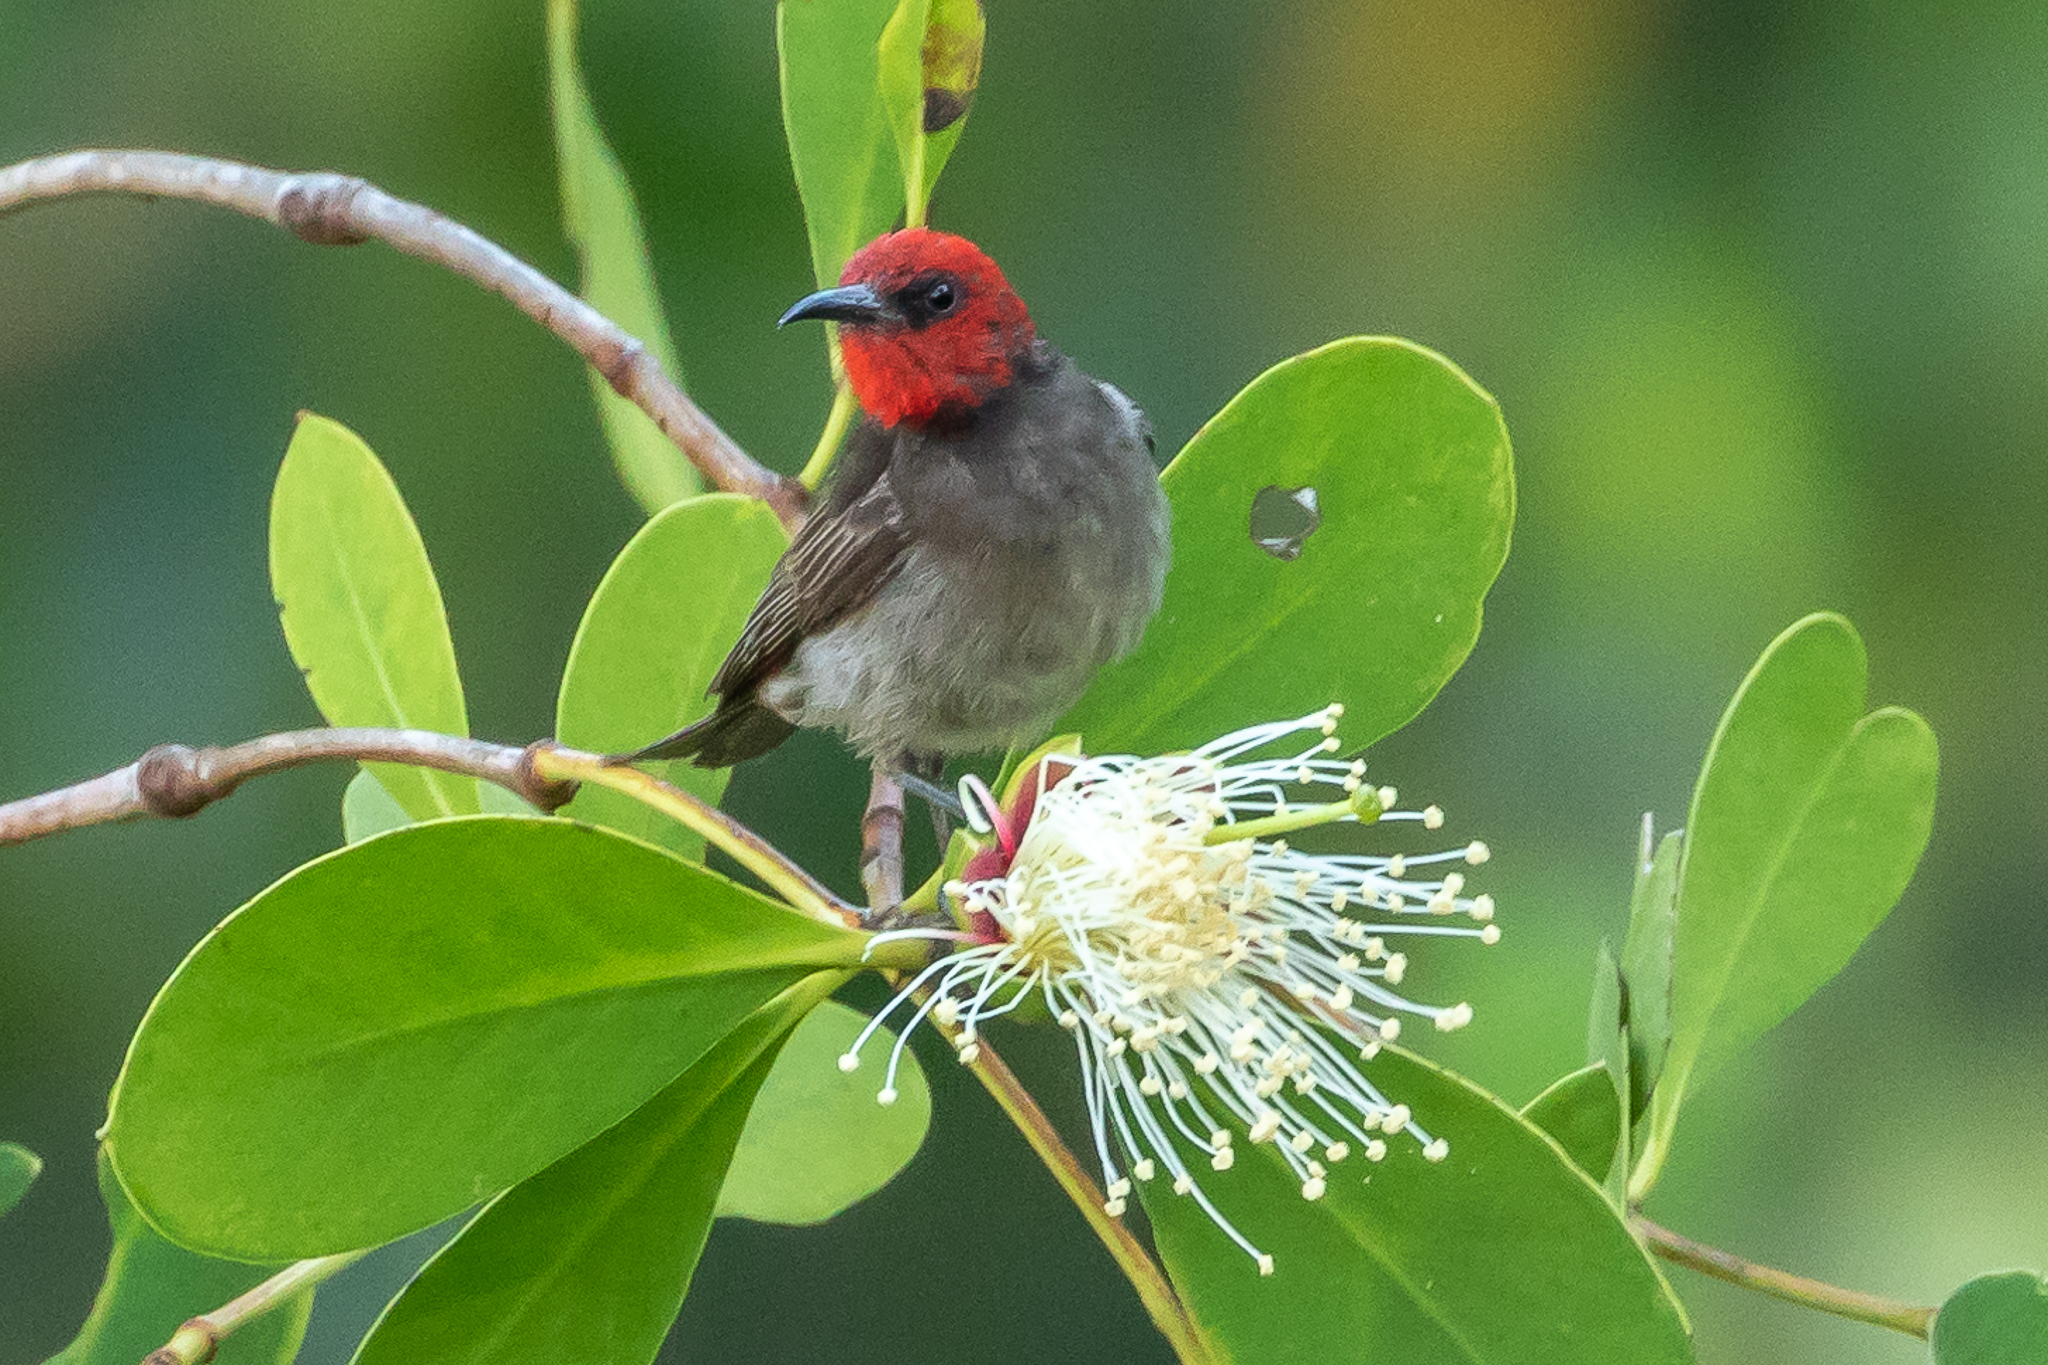 The Red-headed Honeyeater is found in northern Australia, Indonesia and Papua-New Guinea. It feeds on nectar and insects.